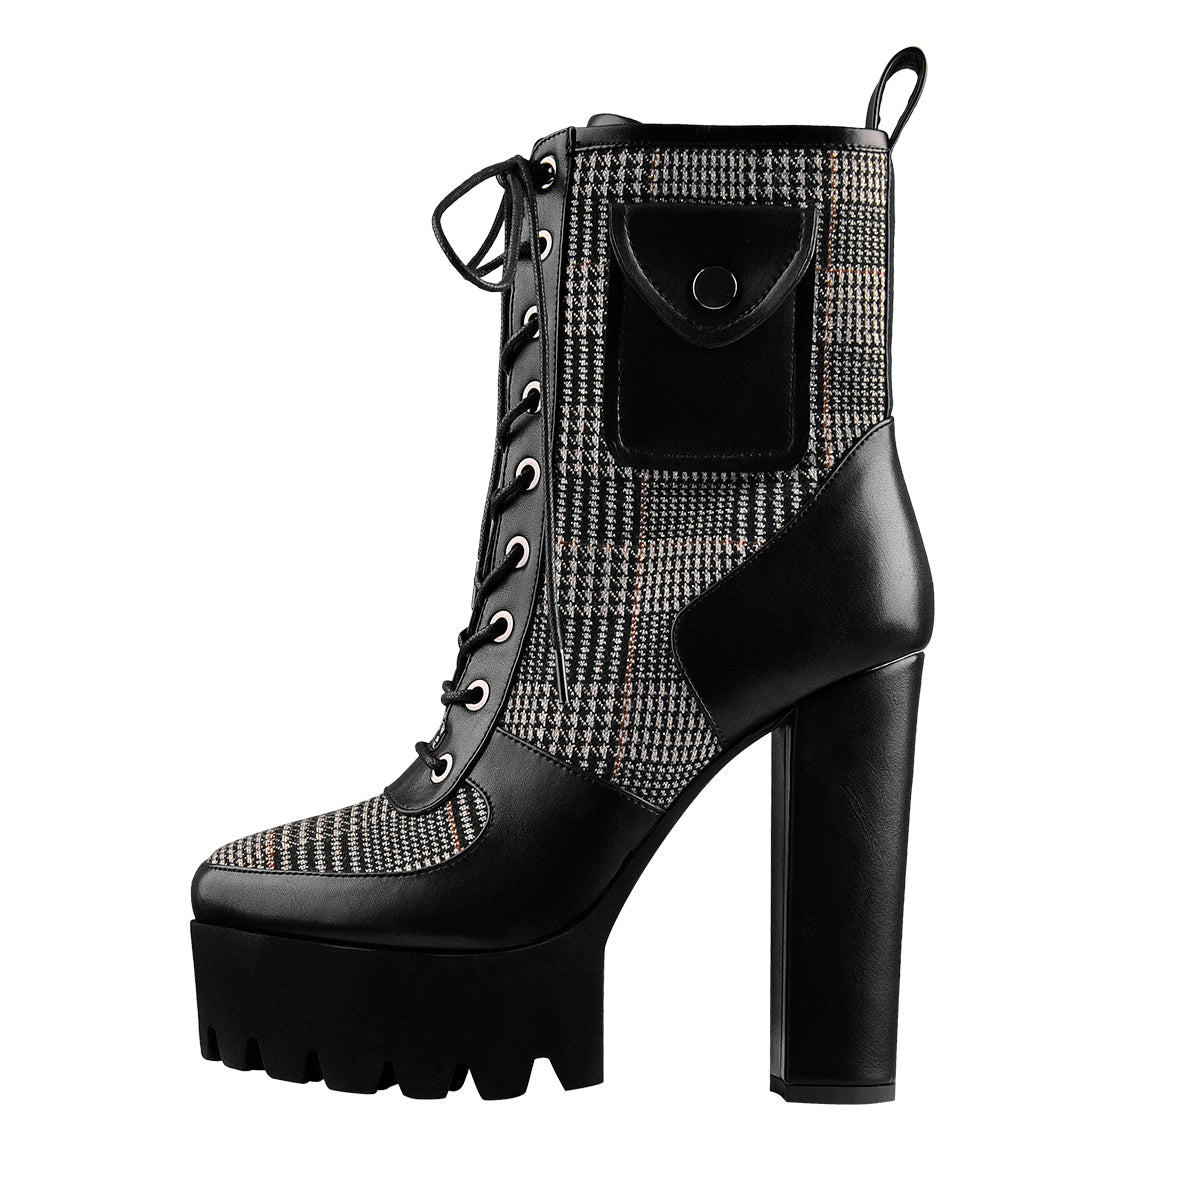 Black Platform Lace Up Chunky Heel Mid Calf Pocket Fashion Boots